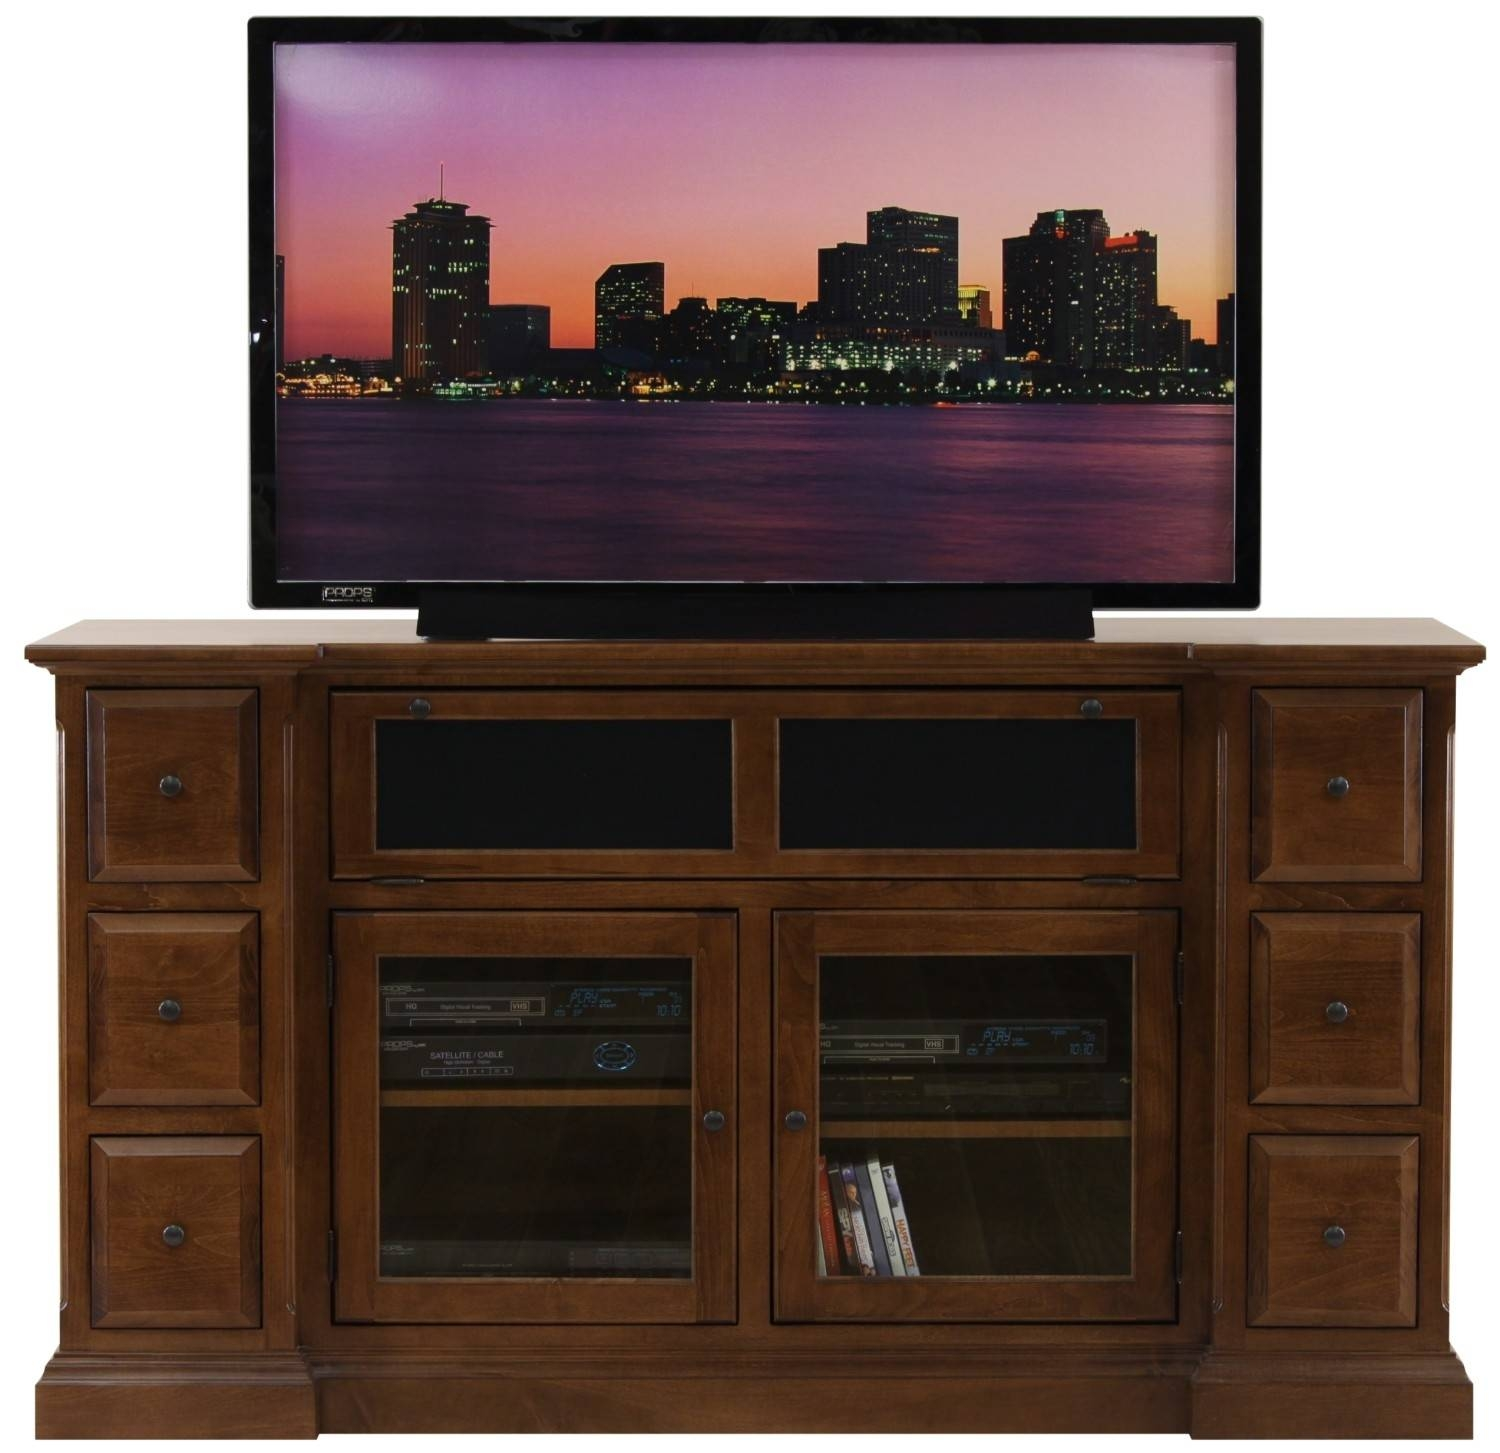 Brown Wooden Tv Stand With Storage With Glass Doors Combined With Regarding Wooden Tv Stands With Glass Doors (View 3 of 15)